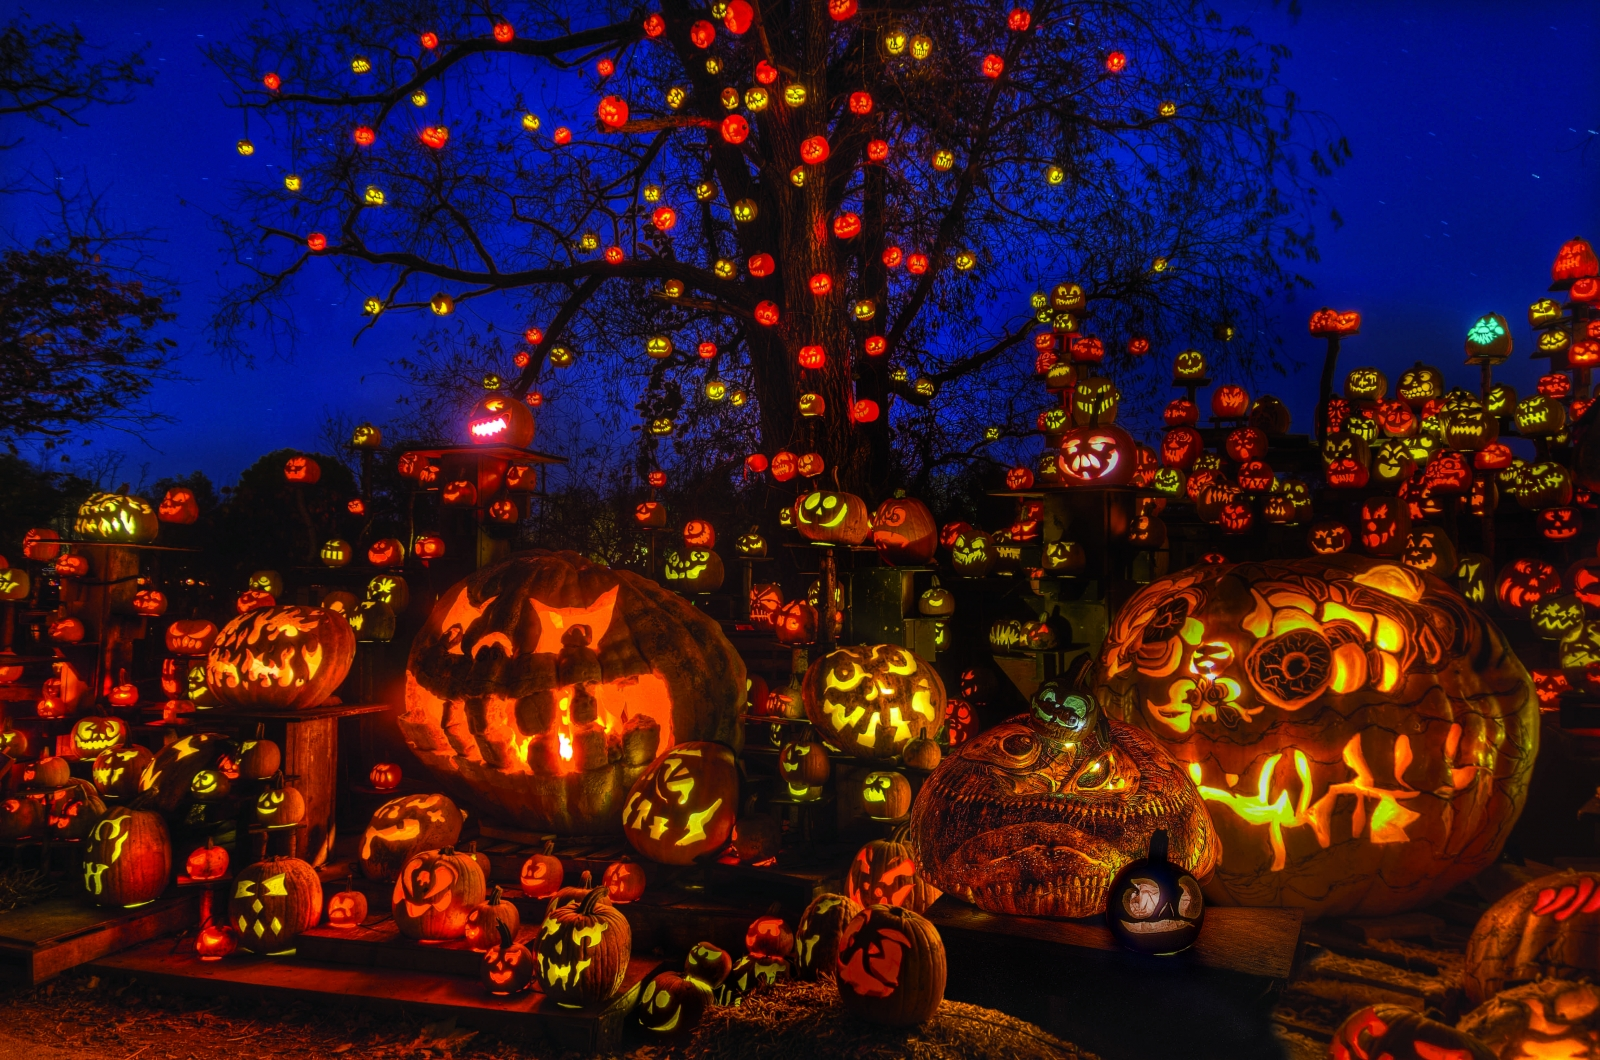 The Jack-O-Lantern Spectacular at the Minnesota Zoo lines the trail with thousands of illuminated pumpkins. Courtesy Minnesota Zoo.